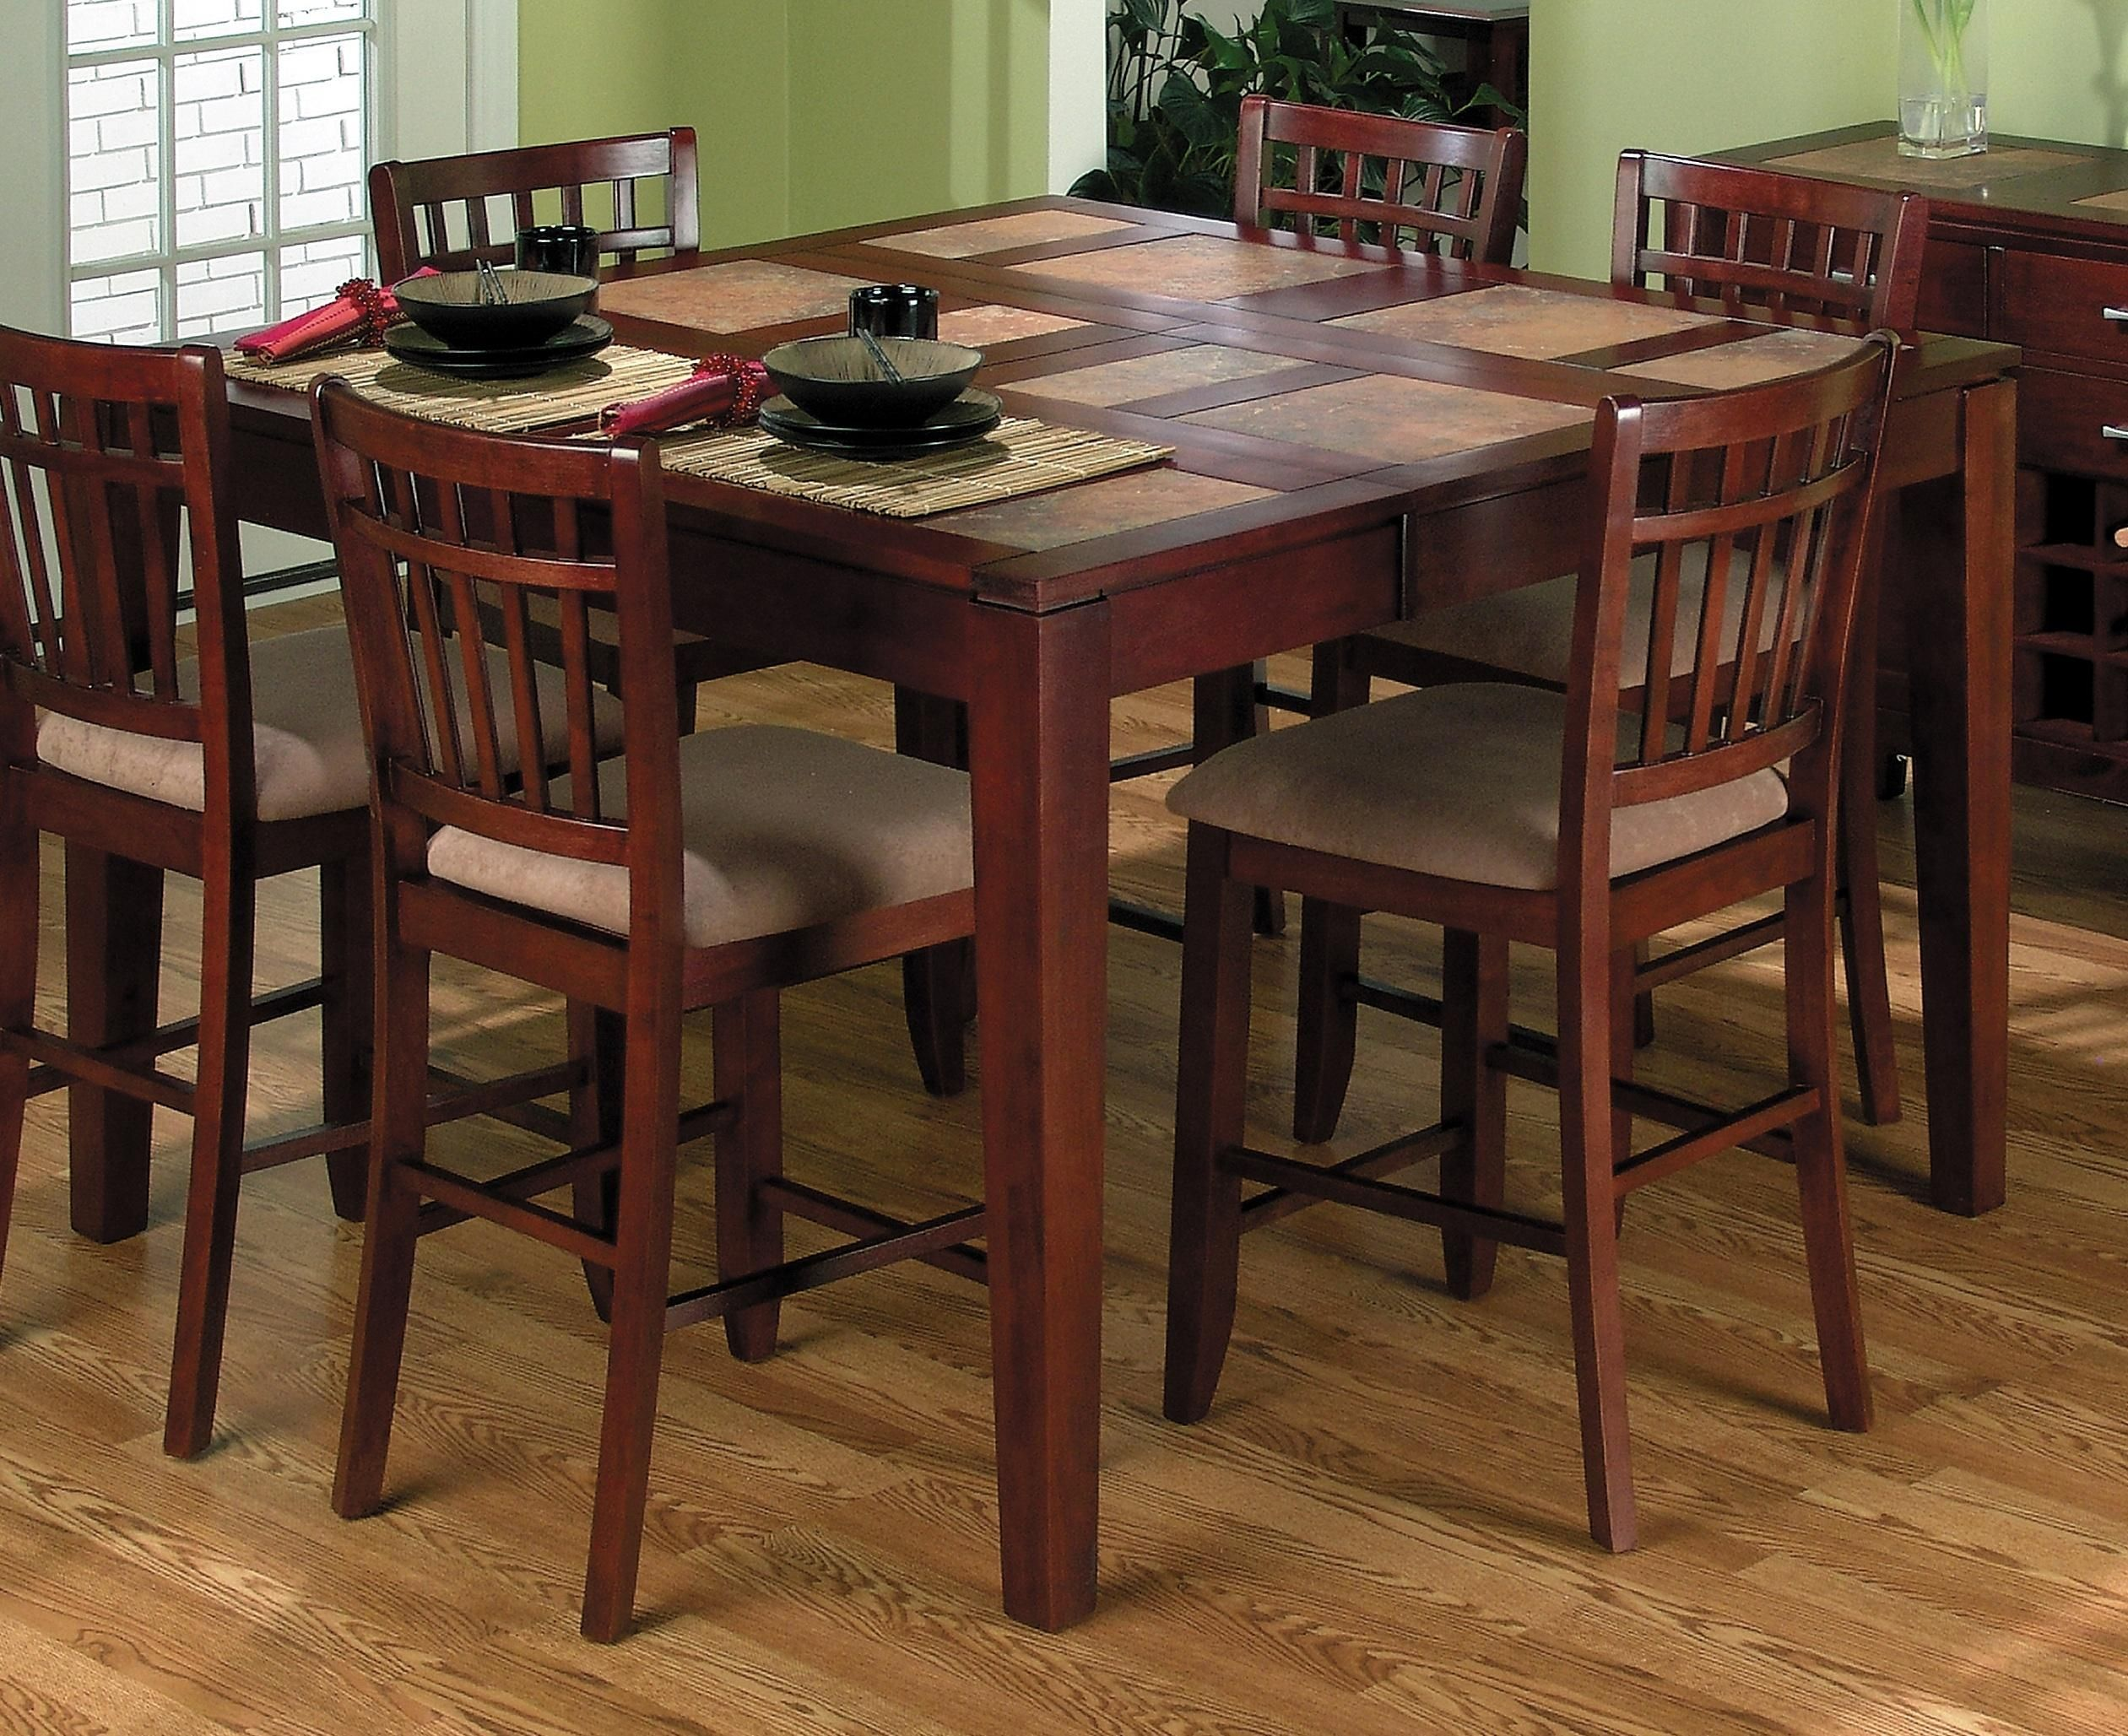 Wooden High Chair For Tall Table